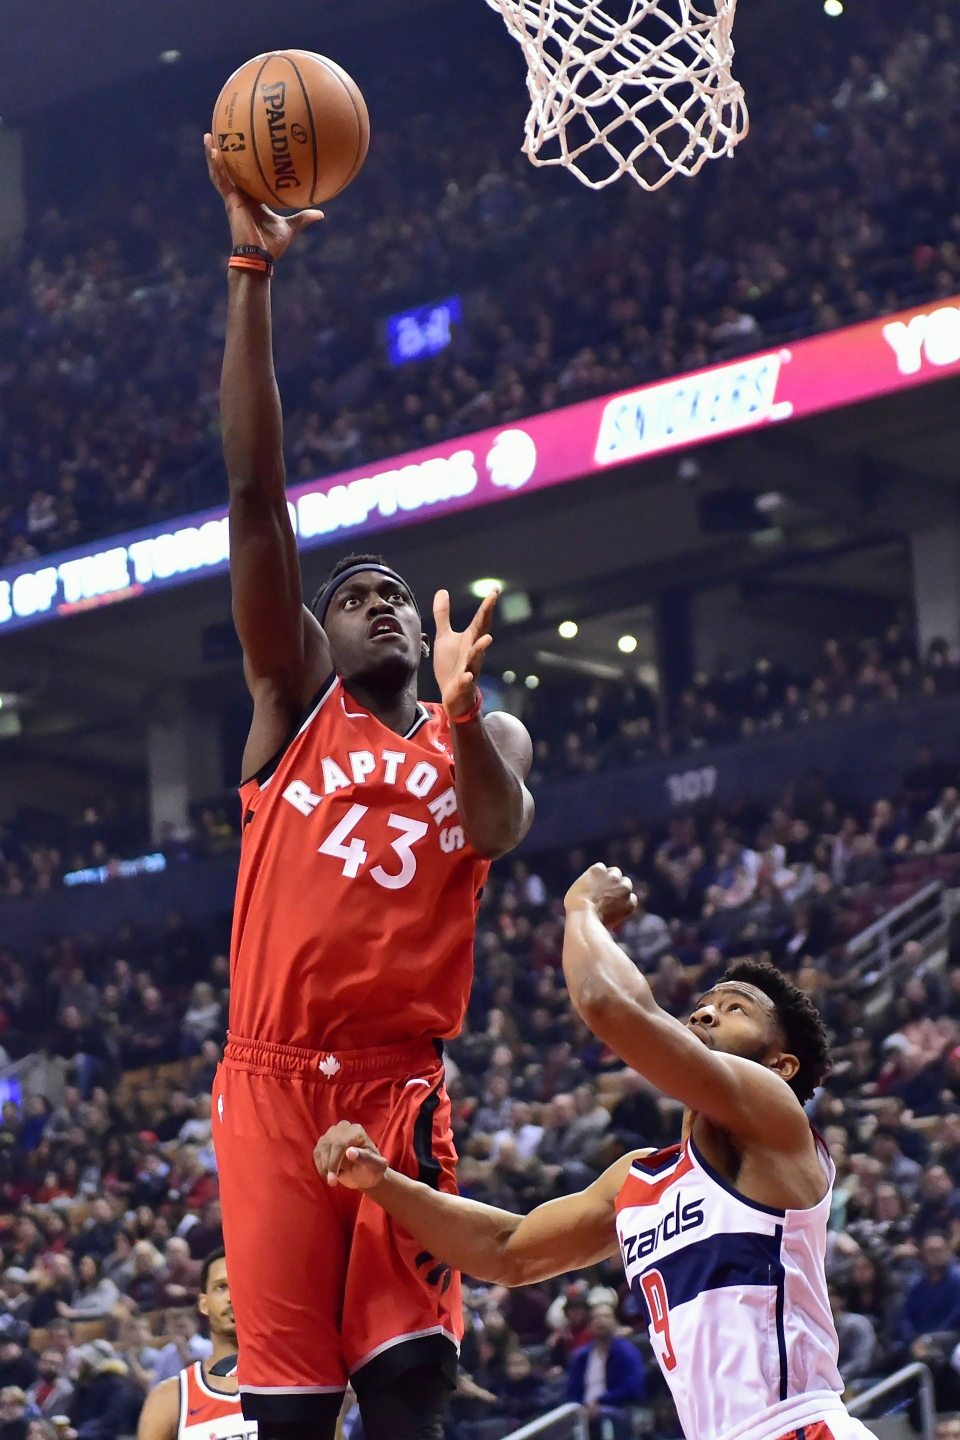 Toronto Raptors forward Pascal Siakam (43) scores over Washington Wizards guard Chasson Randle (9) during first half NBA basketball action in Toronto on Wednesday, February 13, 2019. THE CANADIAN PRESS/Frank Gunn